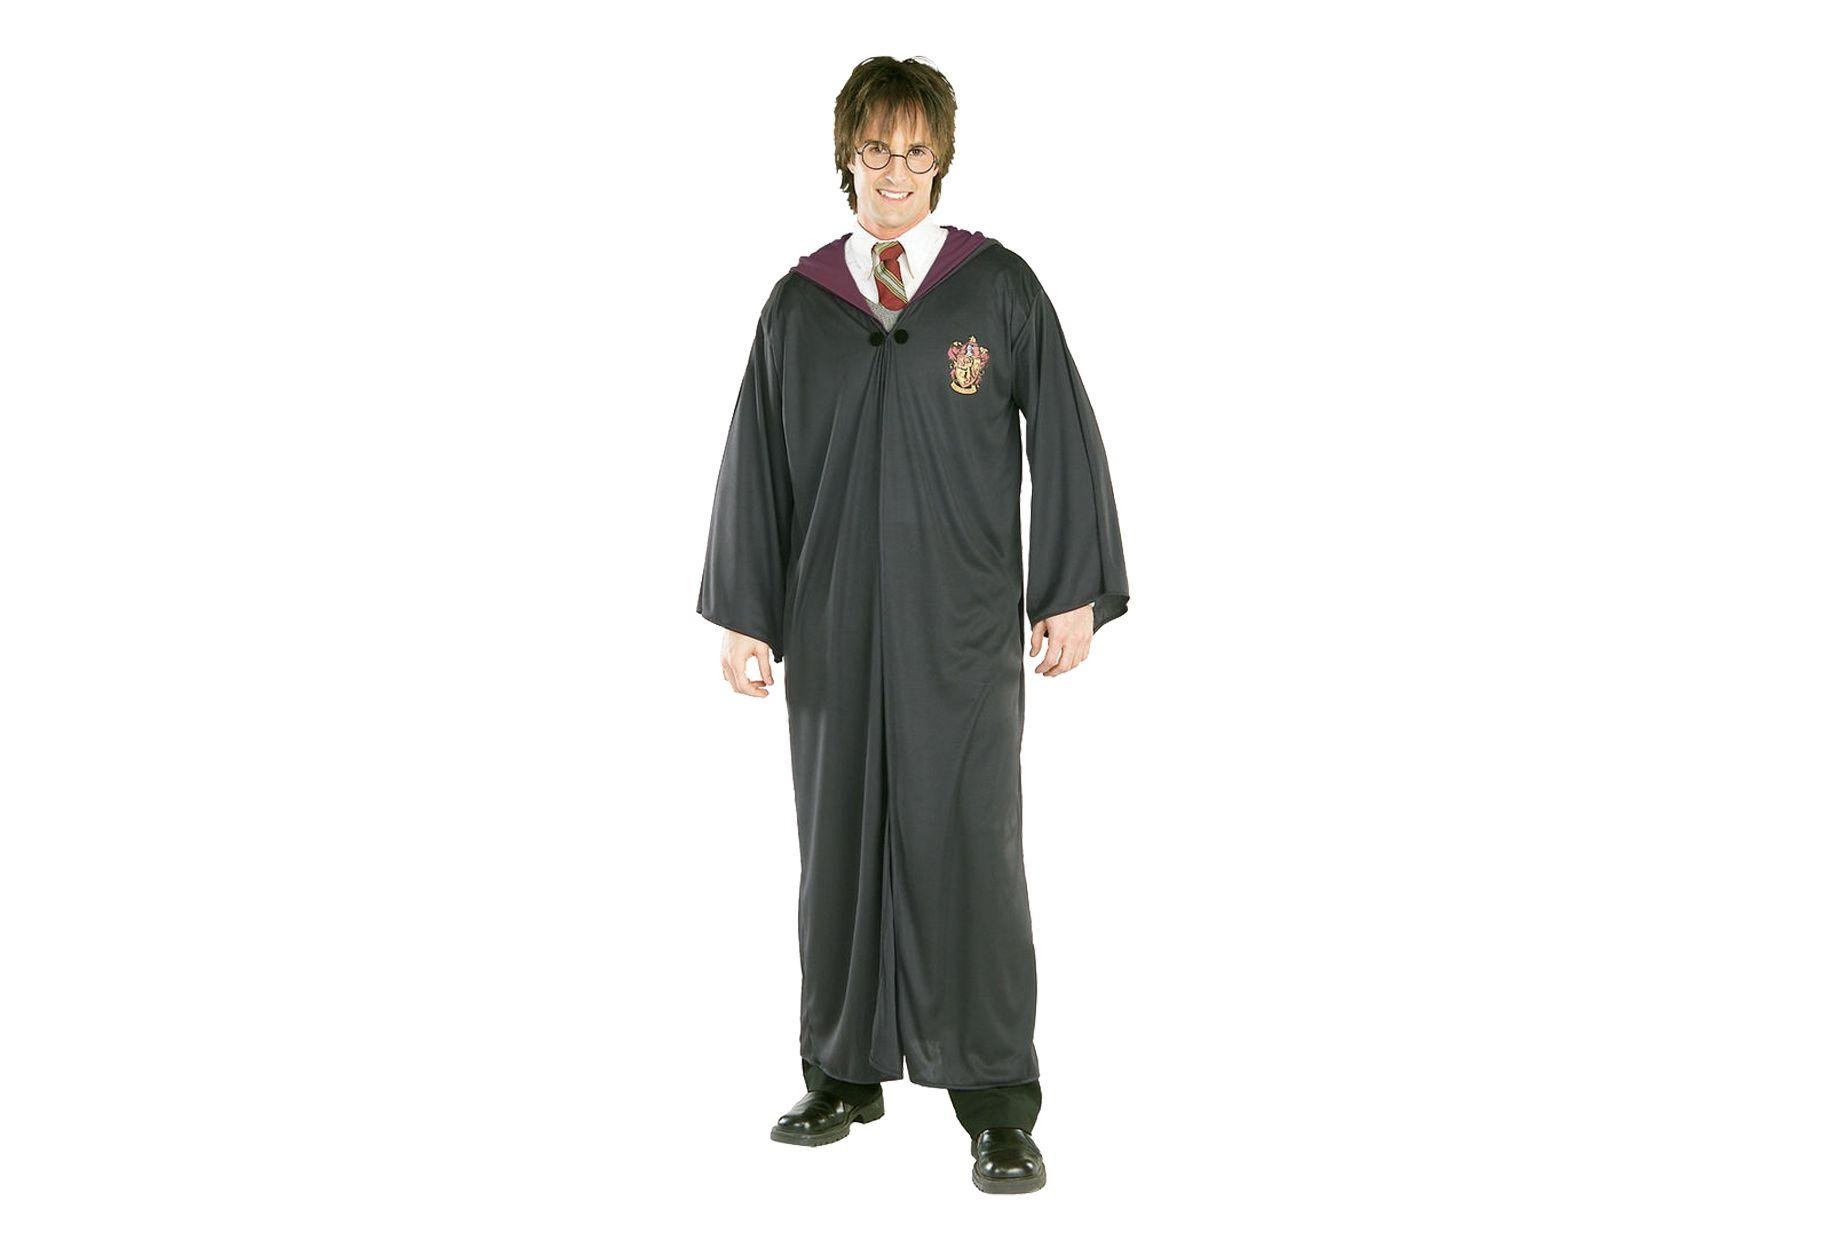 Fancy Dress - Harry Potter Robe - Chest Size Up to 44 Inches